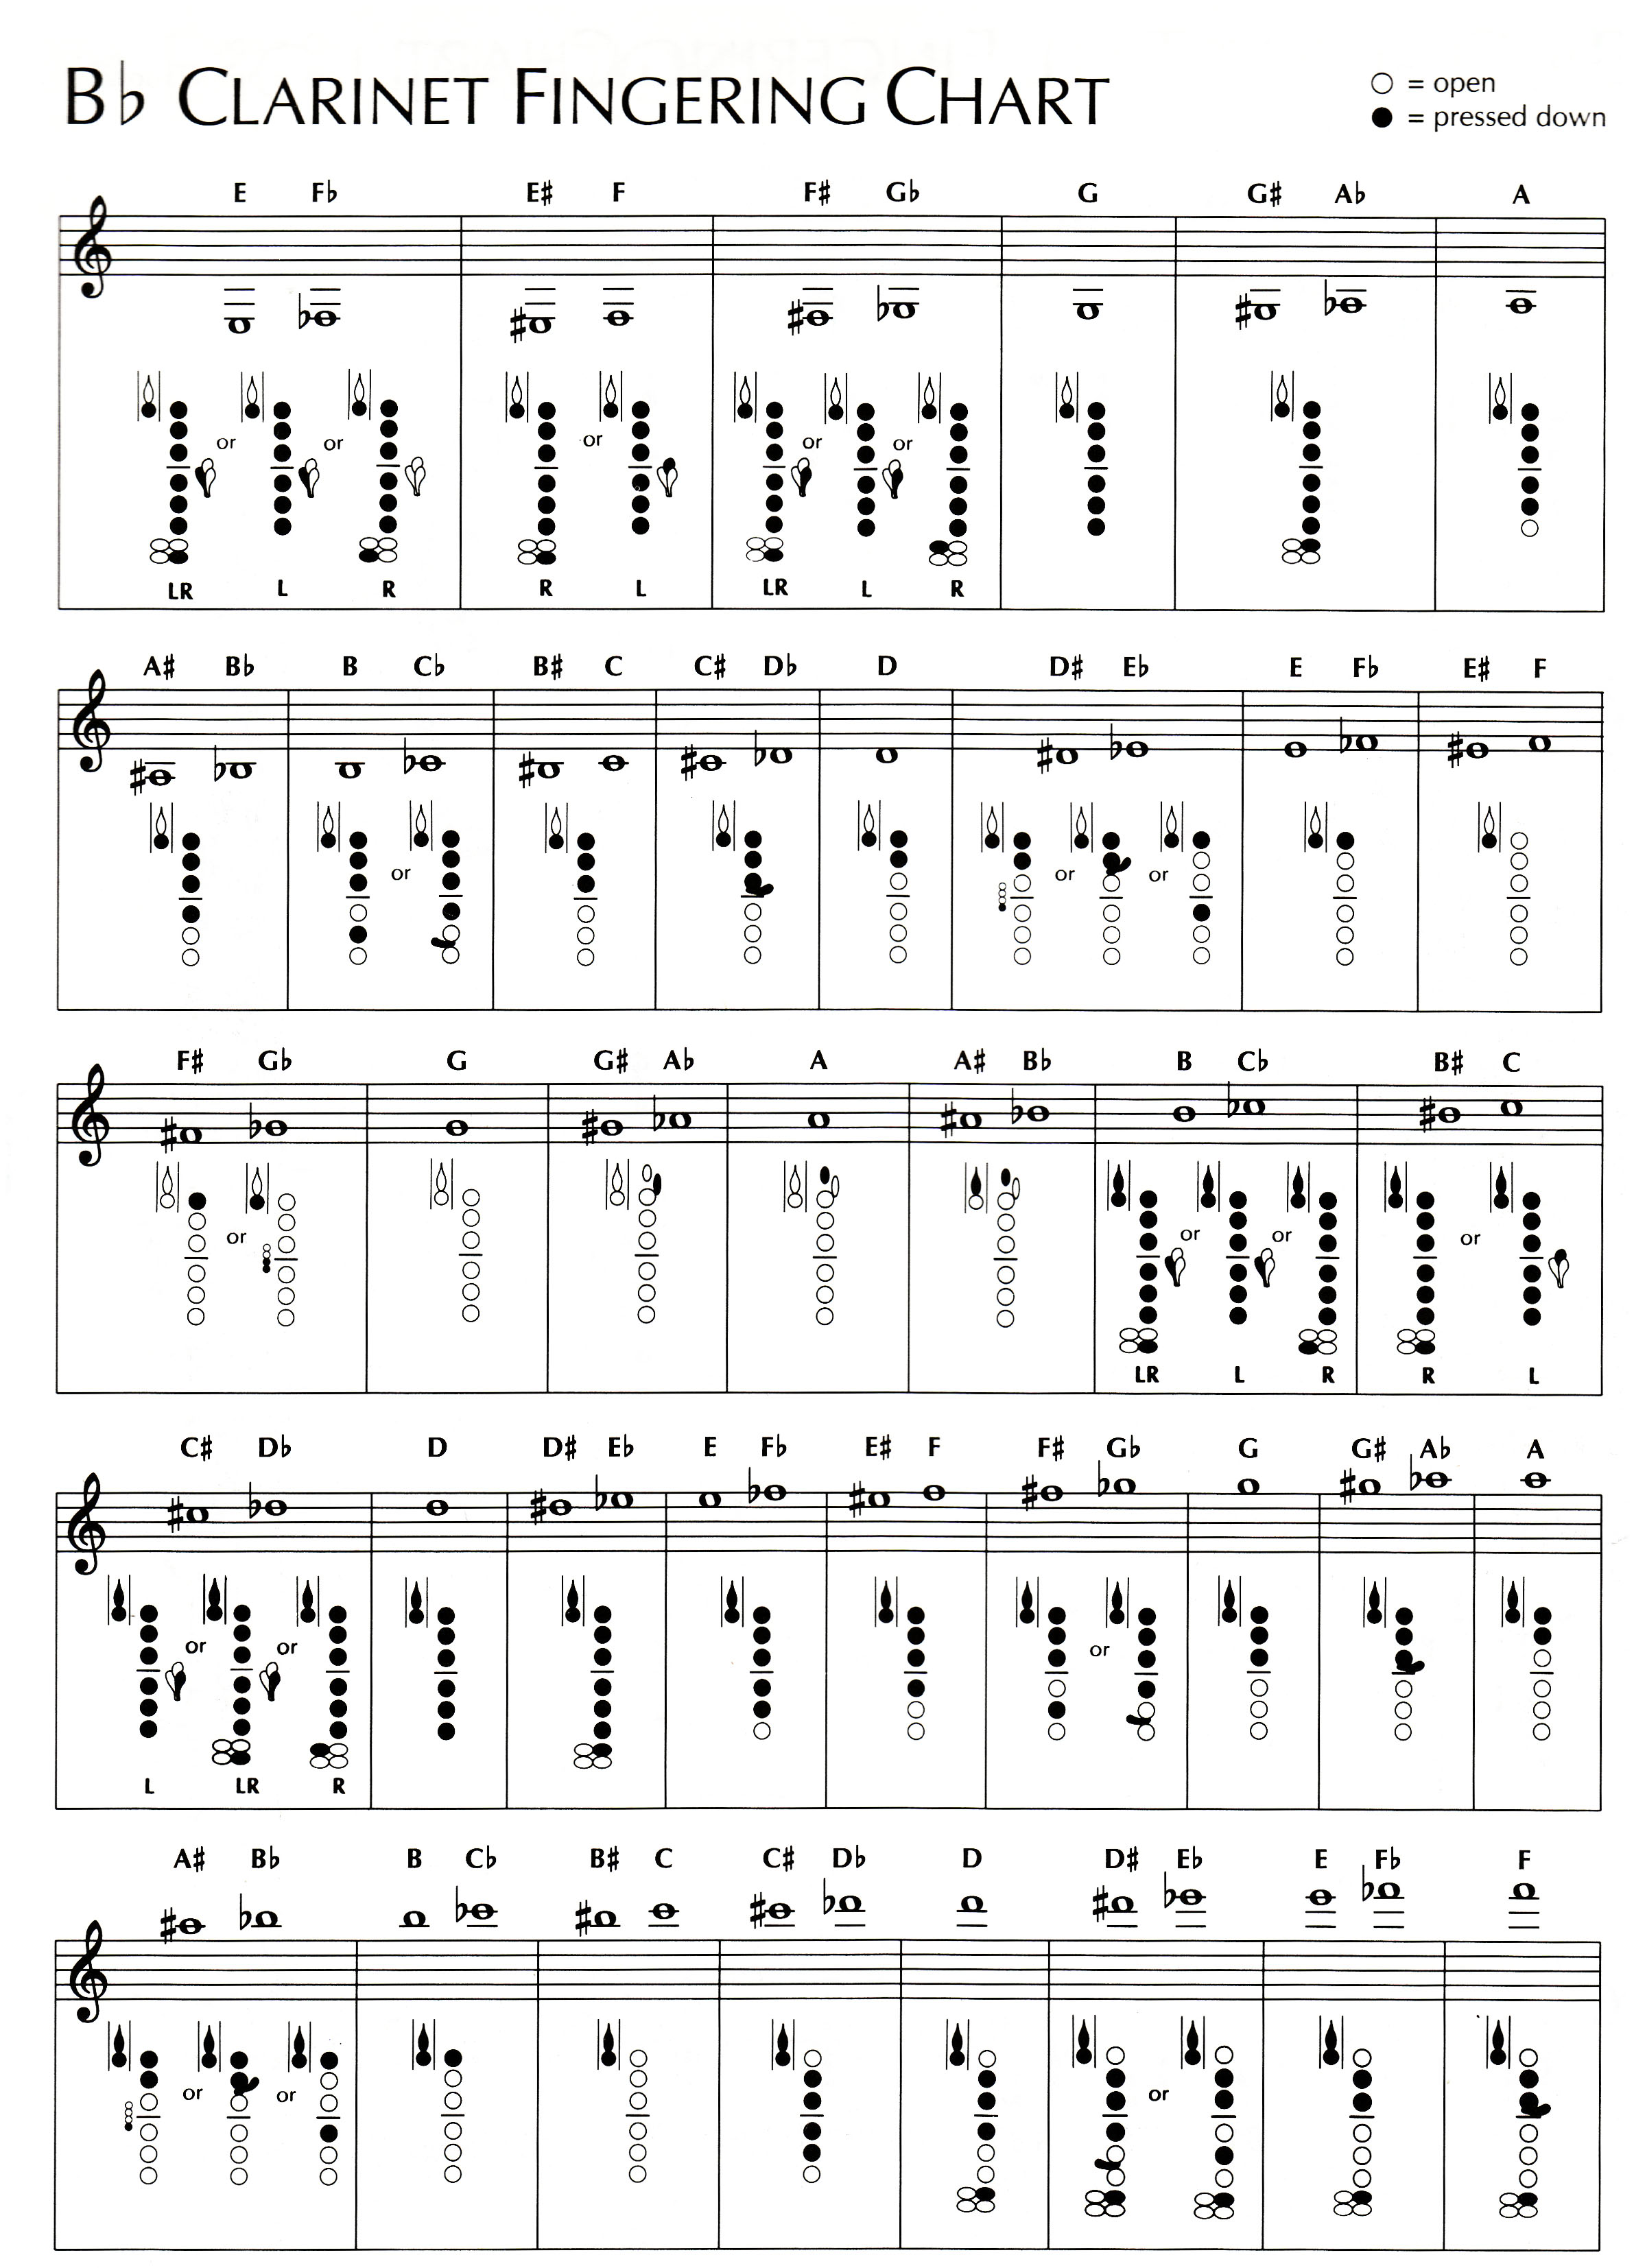 Exceptional Clarinet Fingering Chart